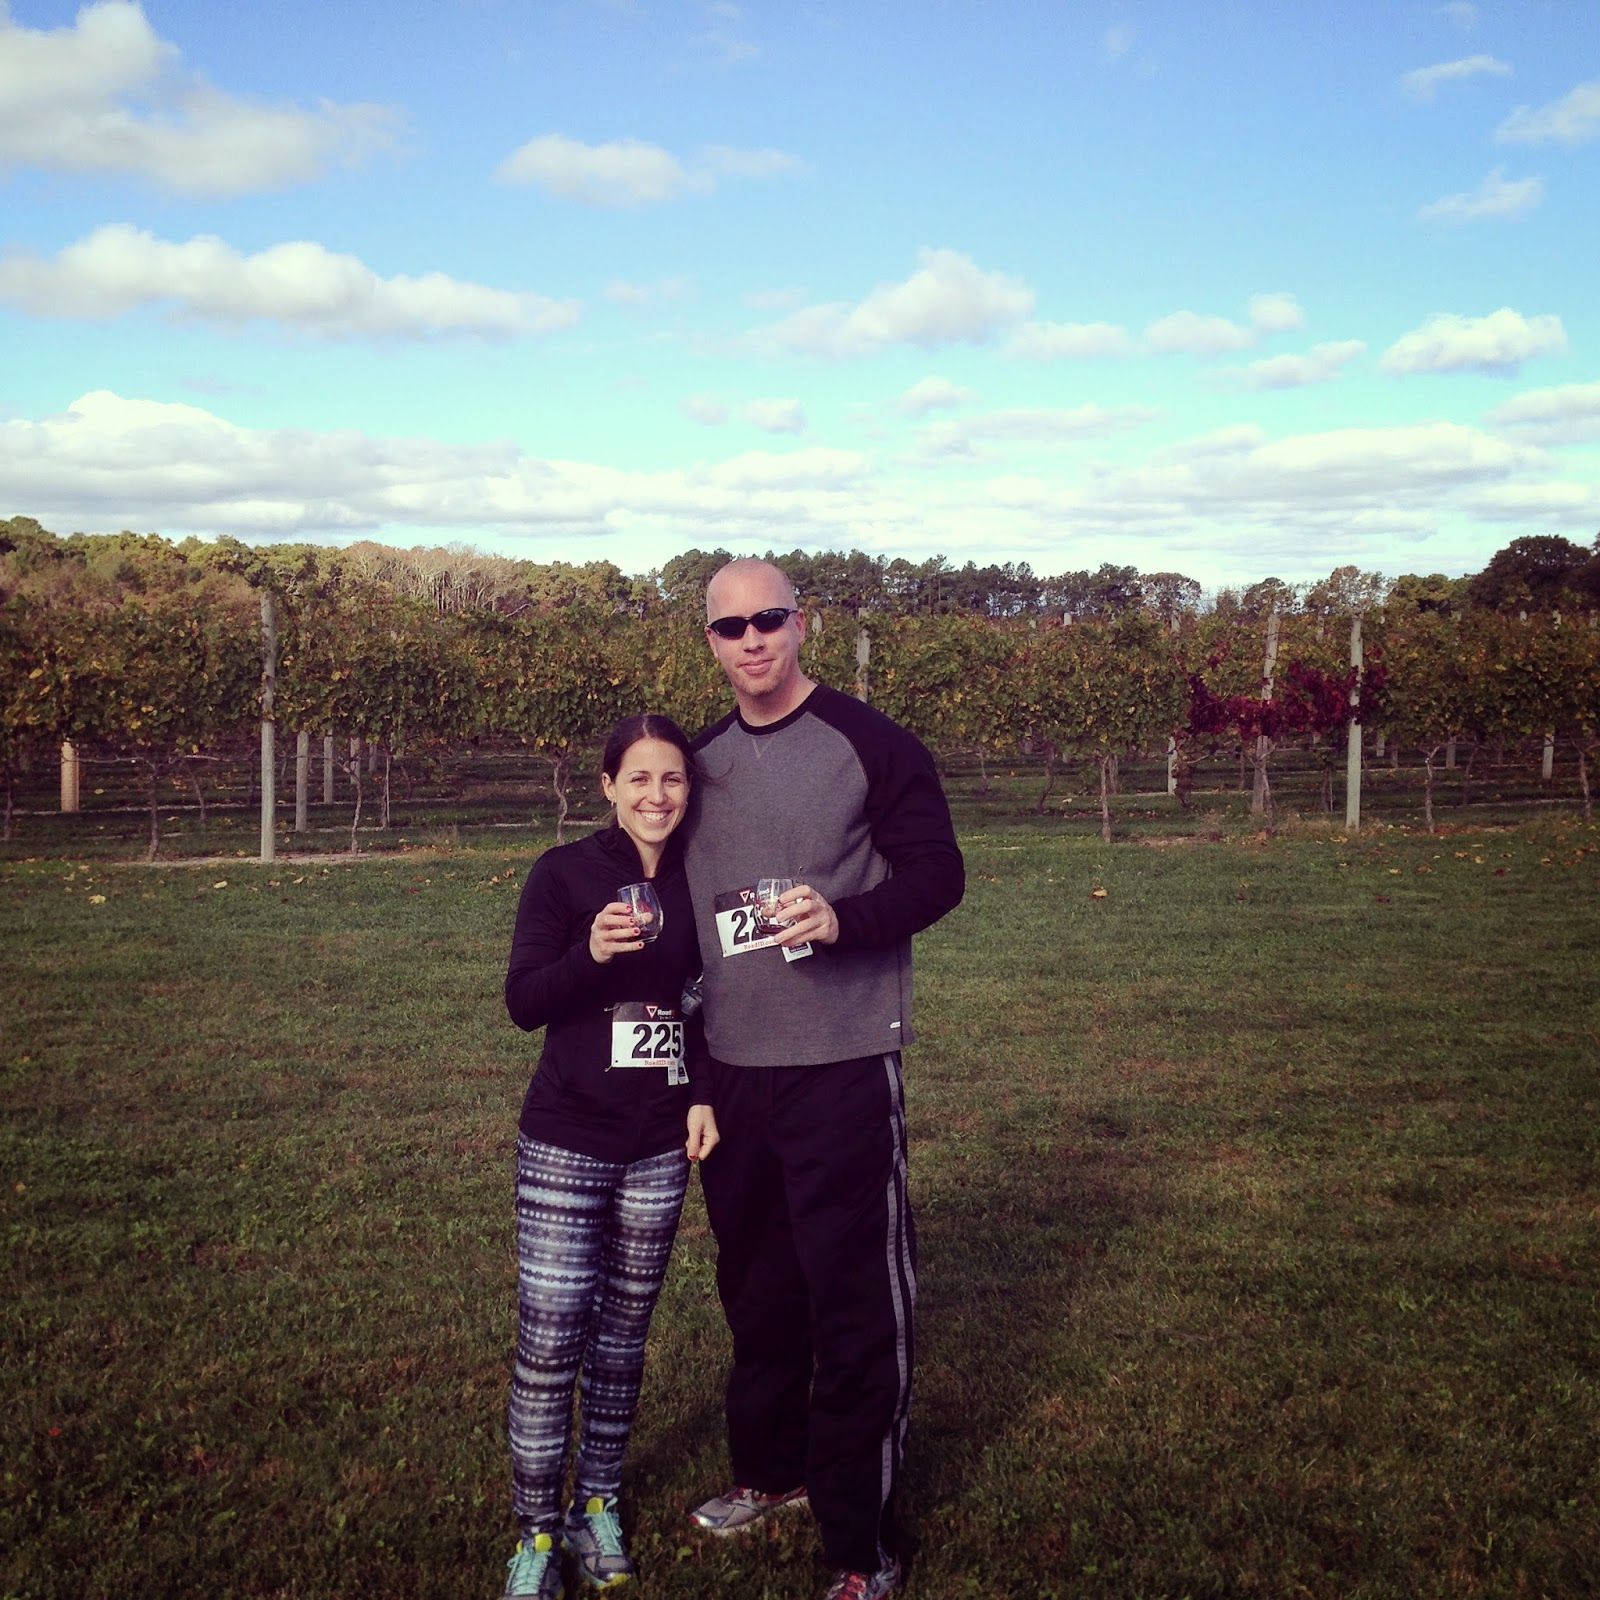 Run the vineyards 5k - Hawk Haven